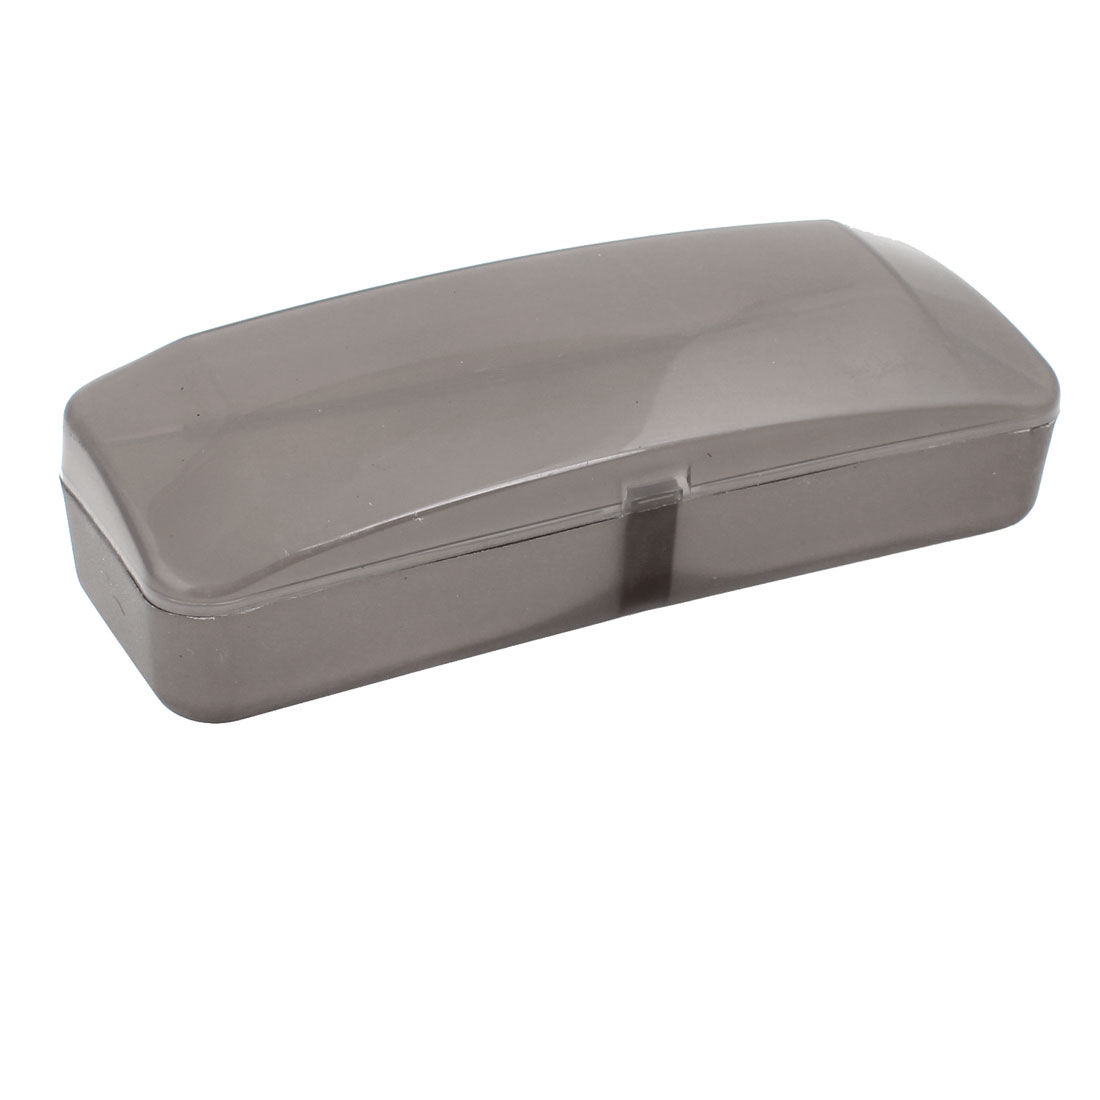 Travel Light Grey Plastic Rectangle Shape Sunglasses Eyeglasses Case Holder